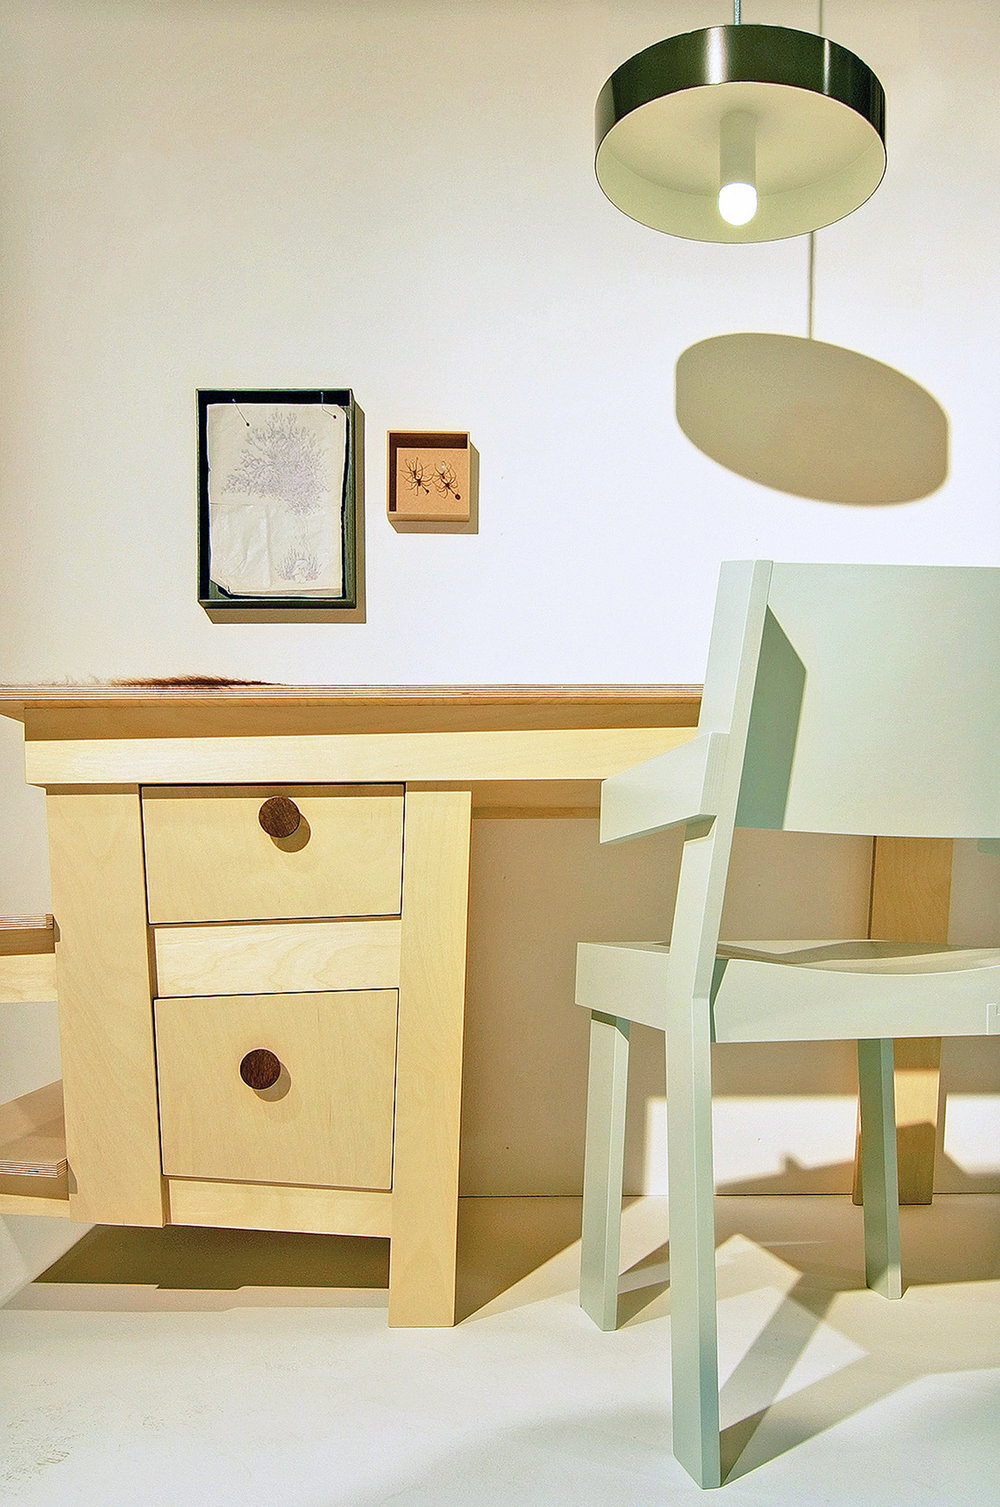 Tom Frencken FURNITURE desk and chair crop.jpg